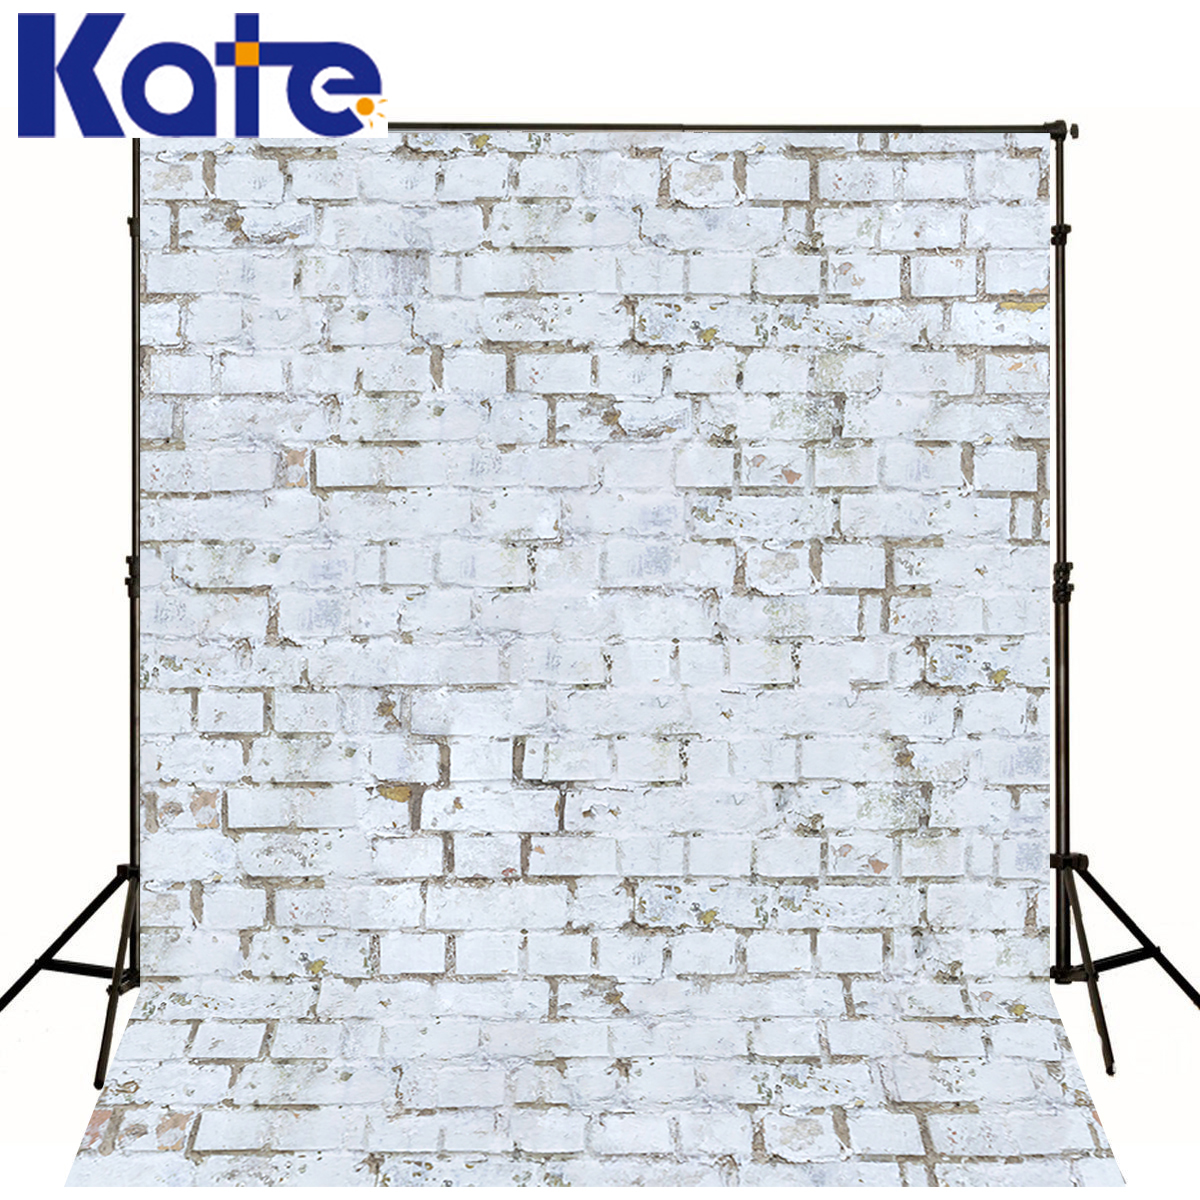 Kate 8X8FT White Brick Wall Backdrops Photography Solid Color Wood Floor Background for Wedding Backdrops Studio<br>